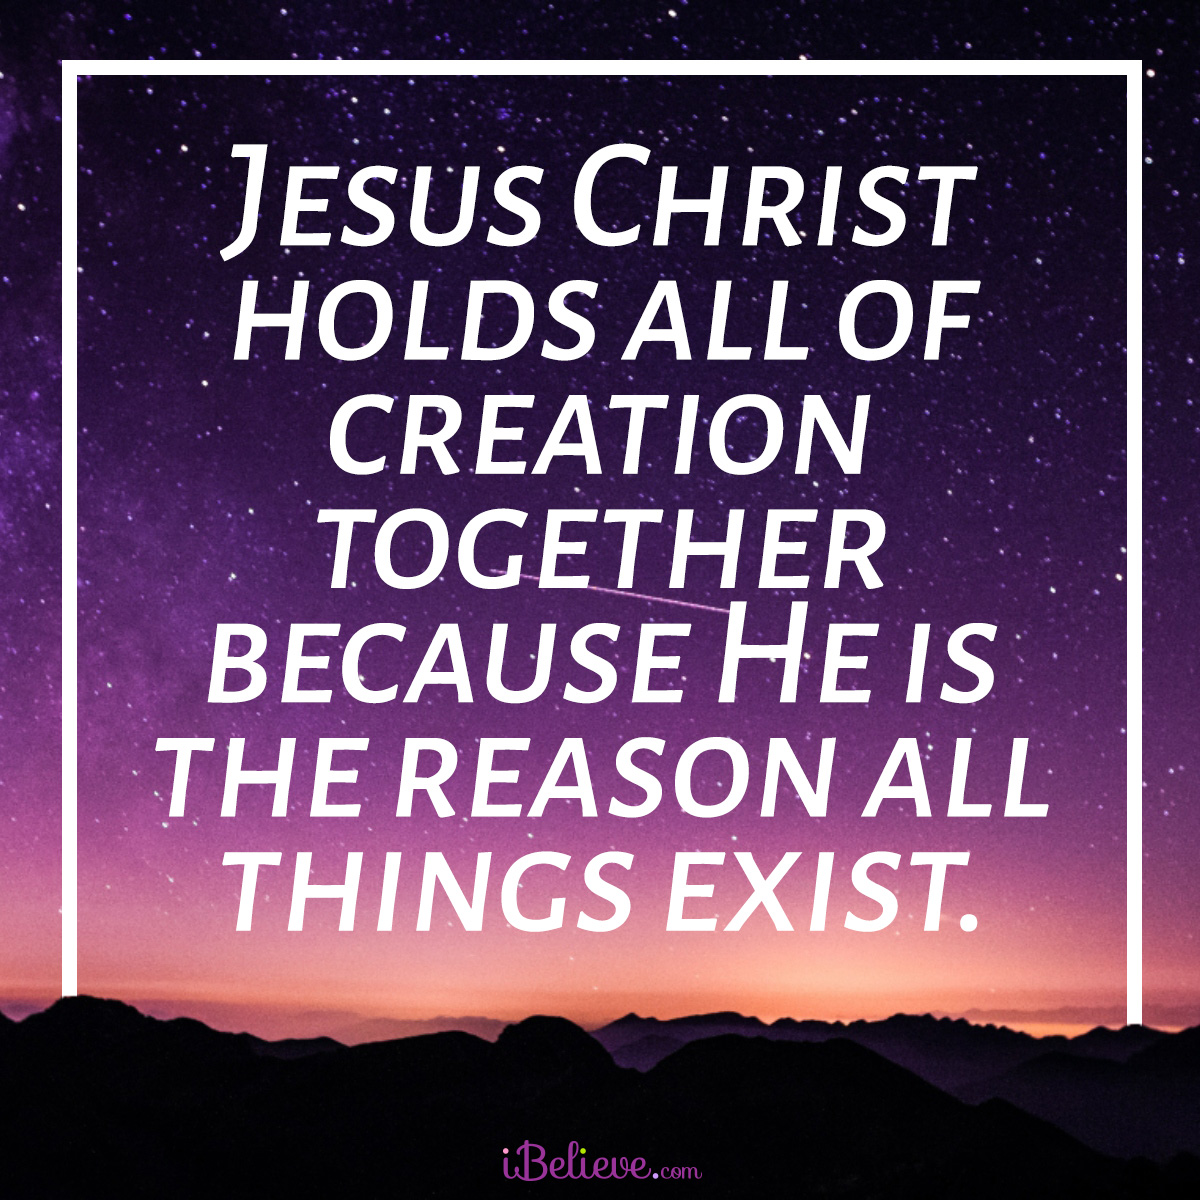 holds-creation-together